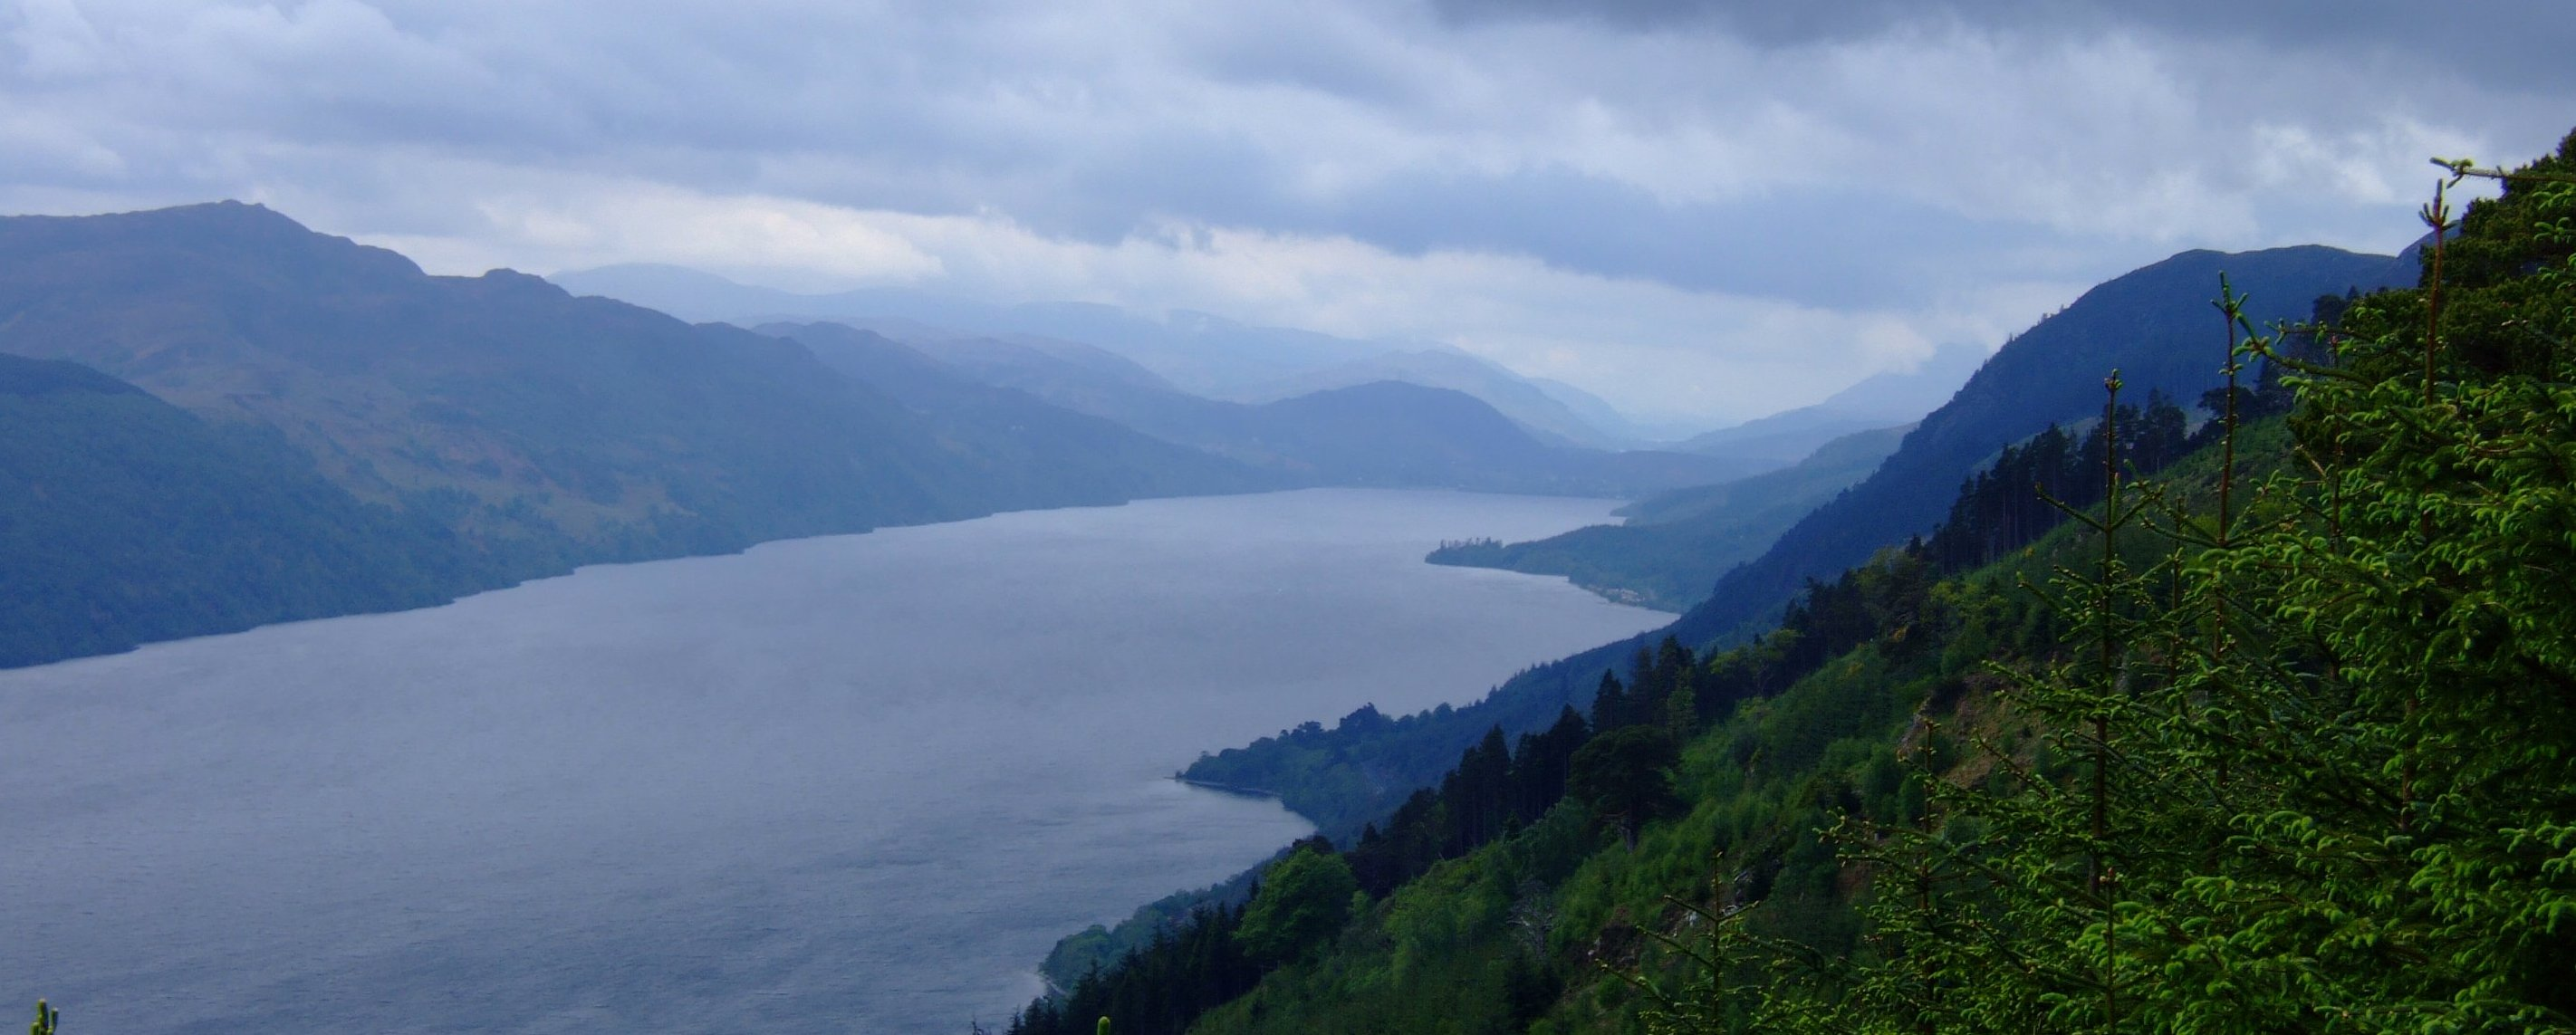 The view back down Loch Ness from the forestry road